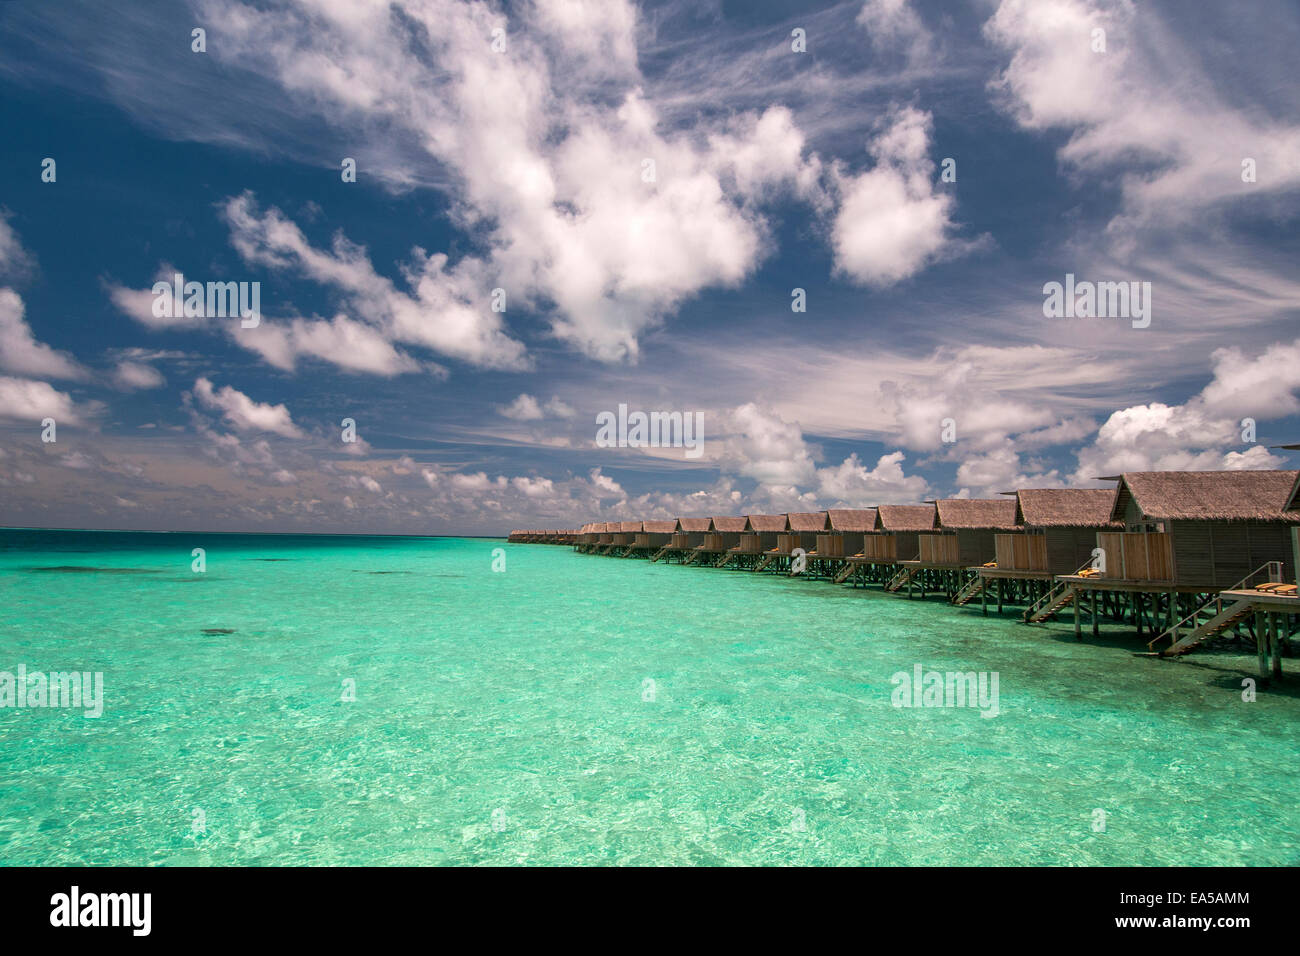 Water villas  on the  tropical island, Maldives - Stock Image